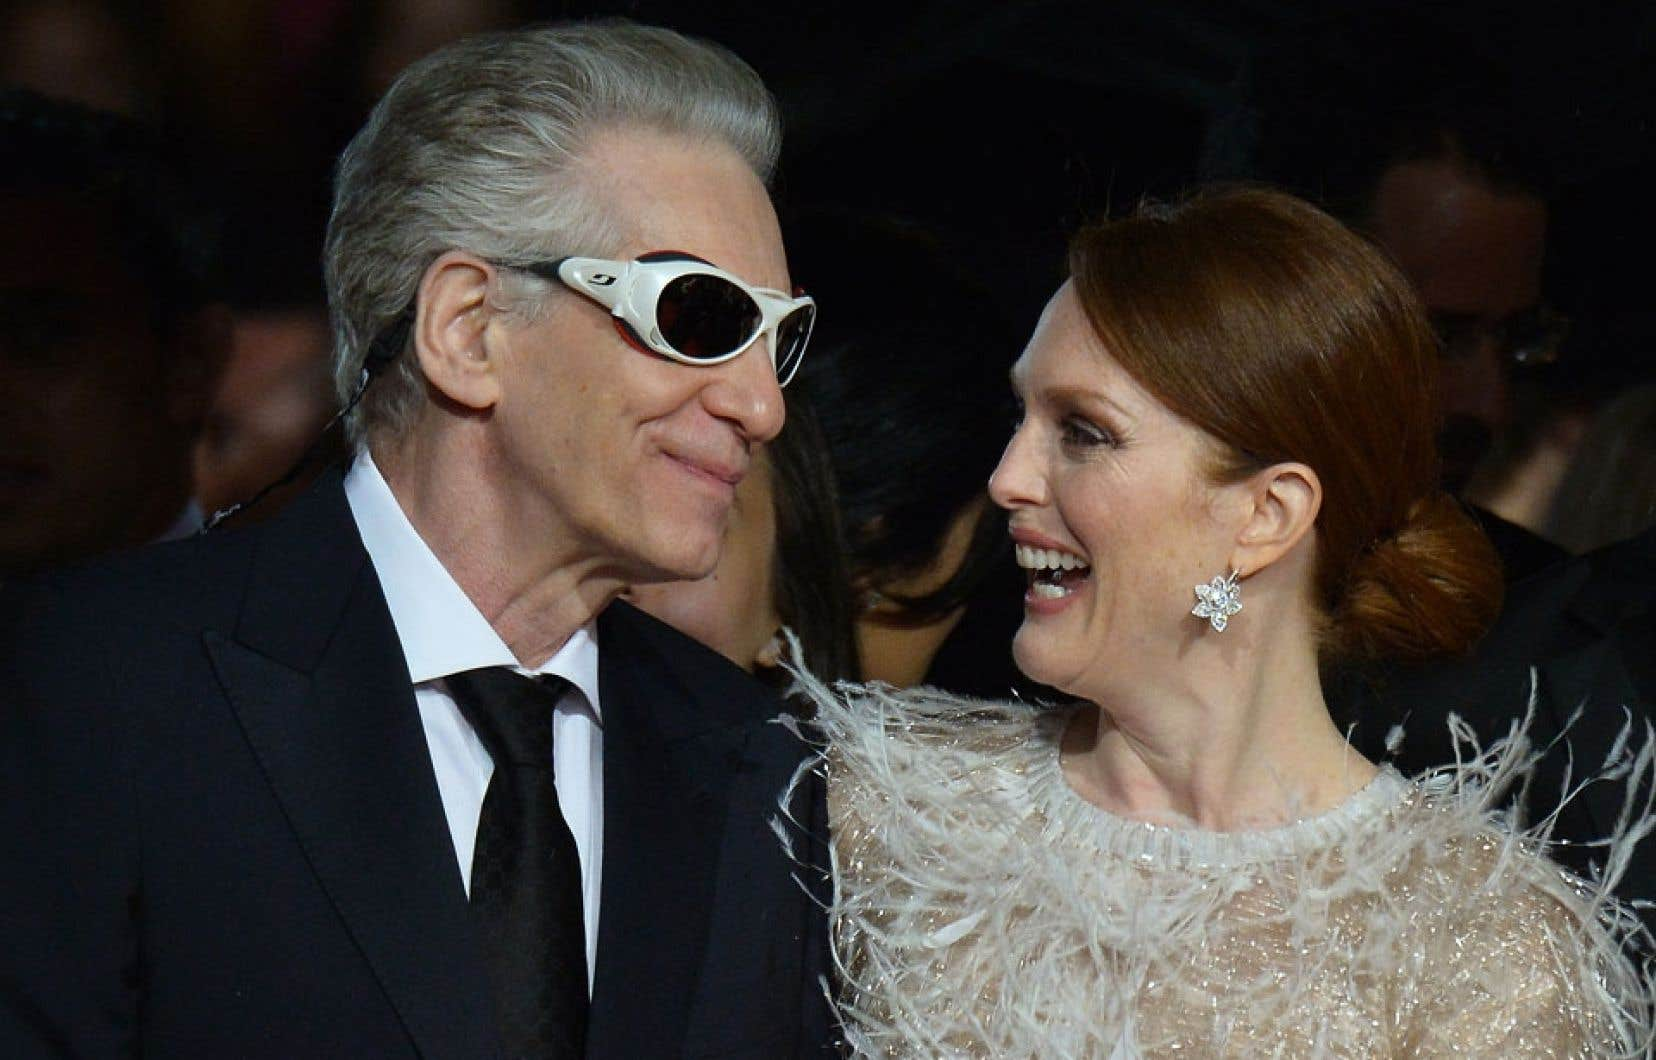 Le cinéaste canadien David Cronenberg et l'actrice Julianne Moore se rendant à la projection de Maps to the Stars, au Festival de Cannes lundi.